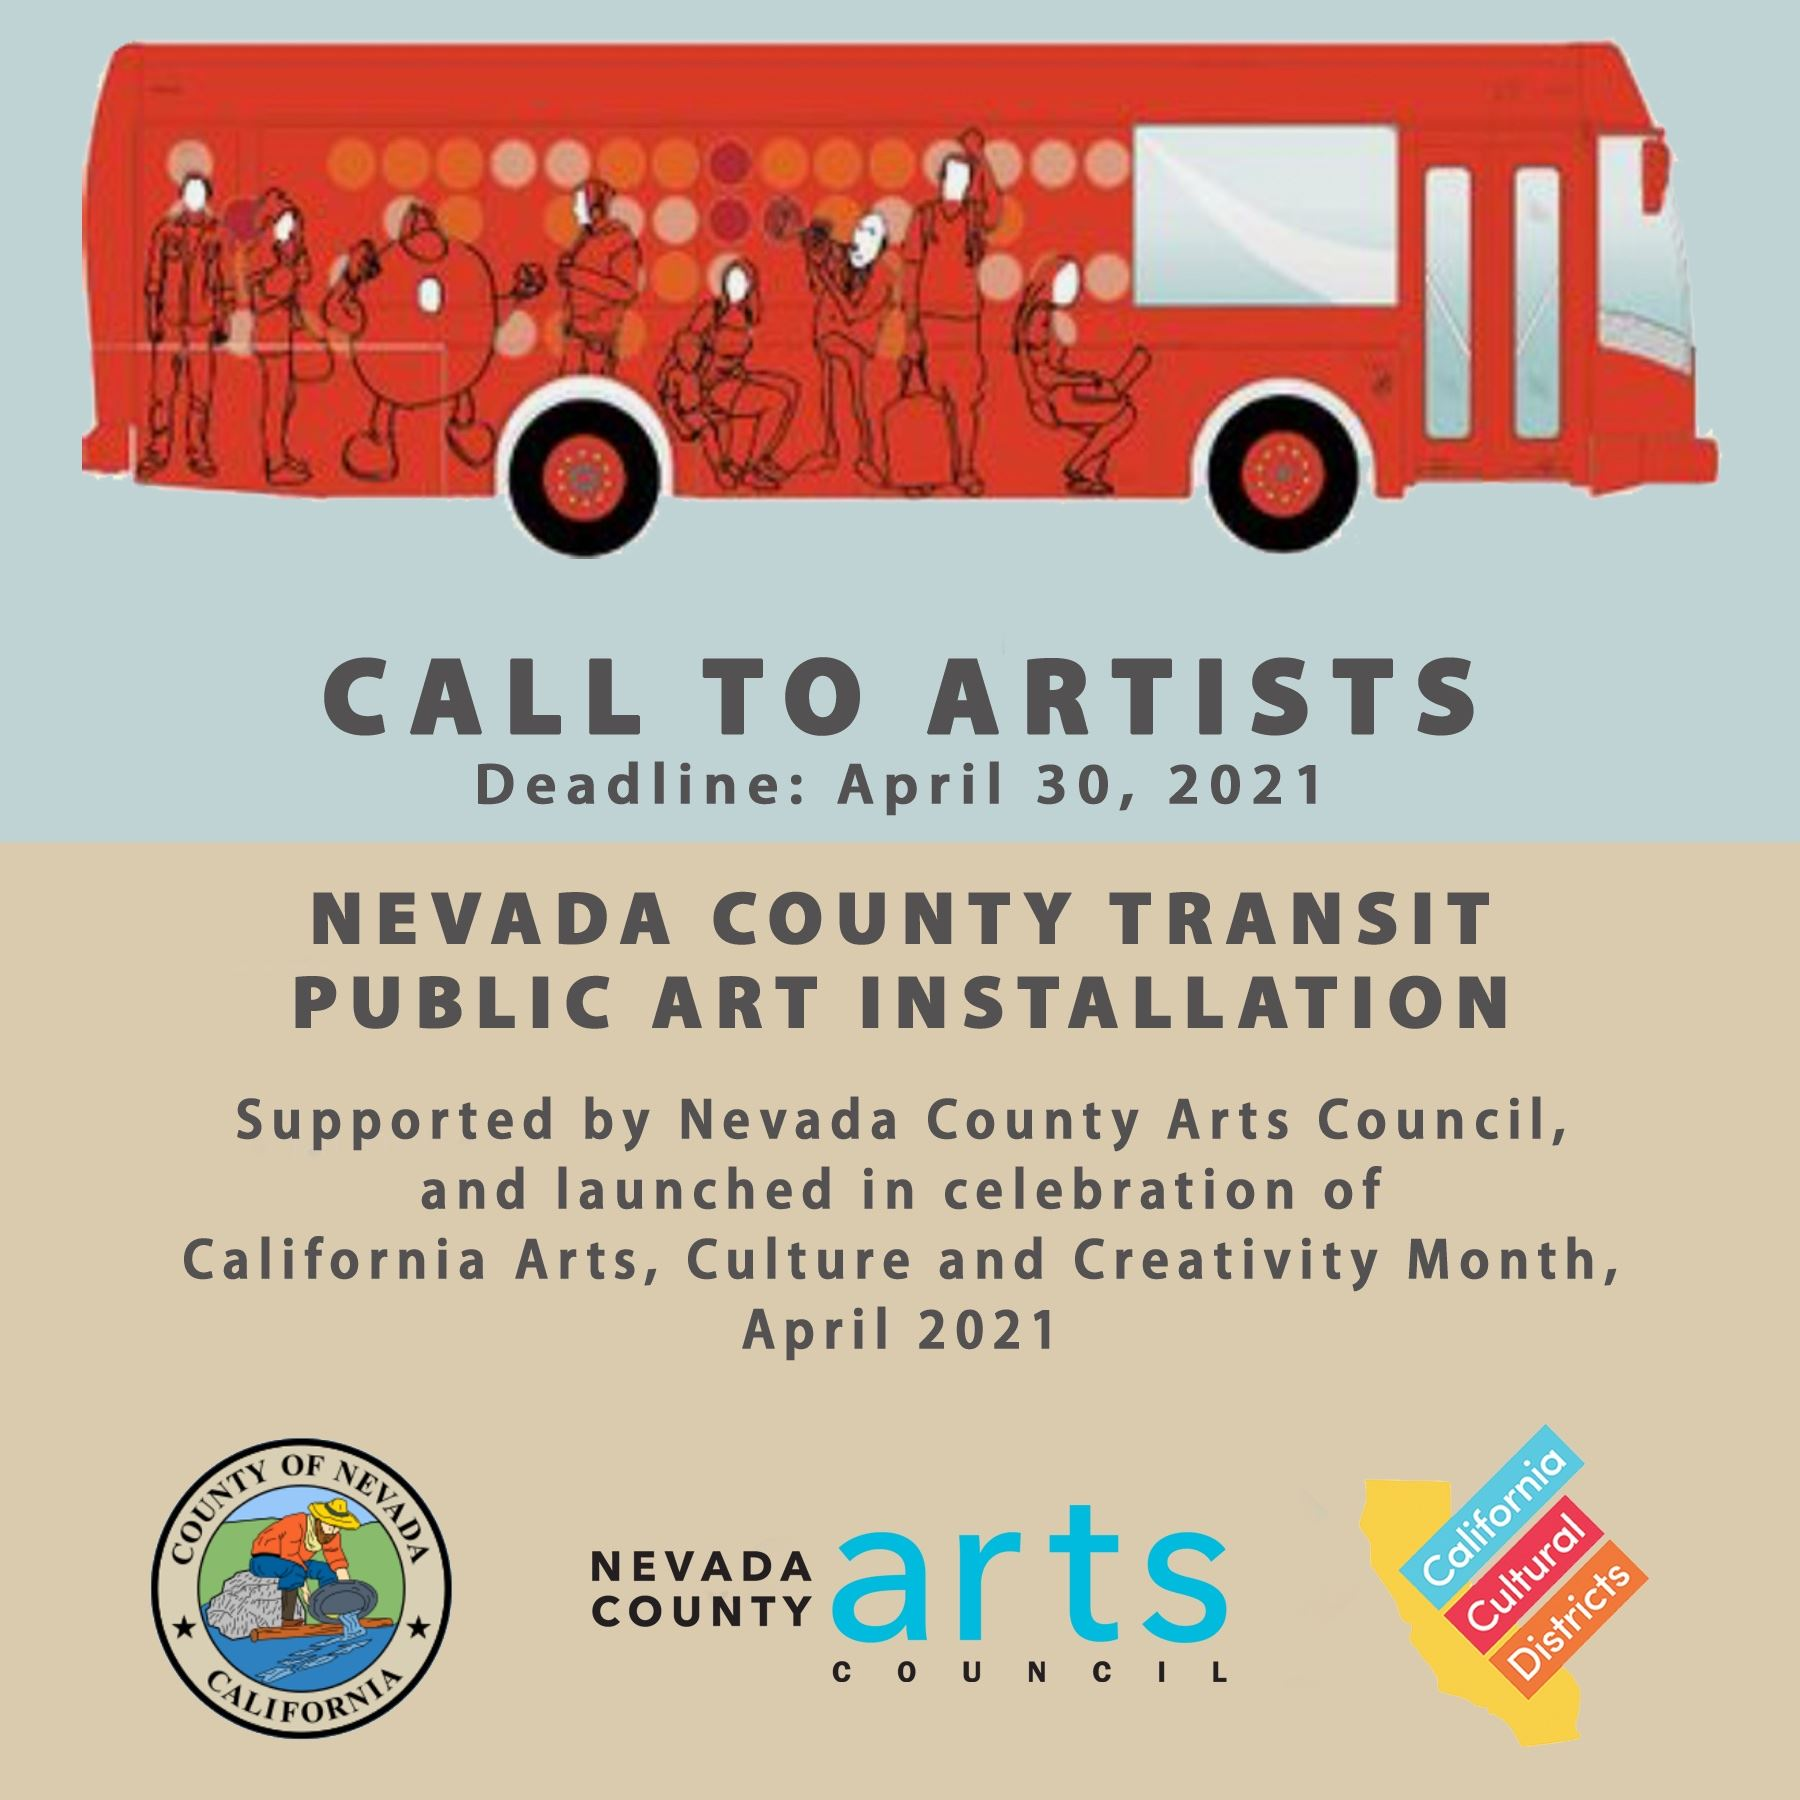 IG Transit NevCO Connects and Art